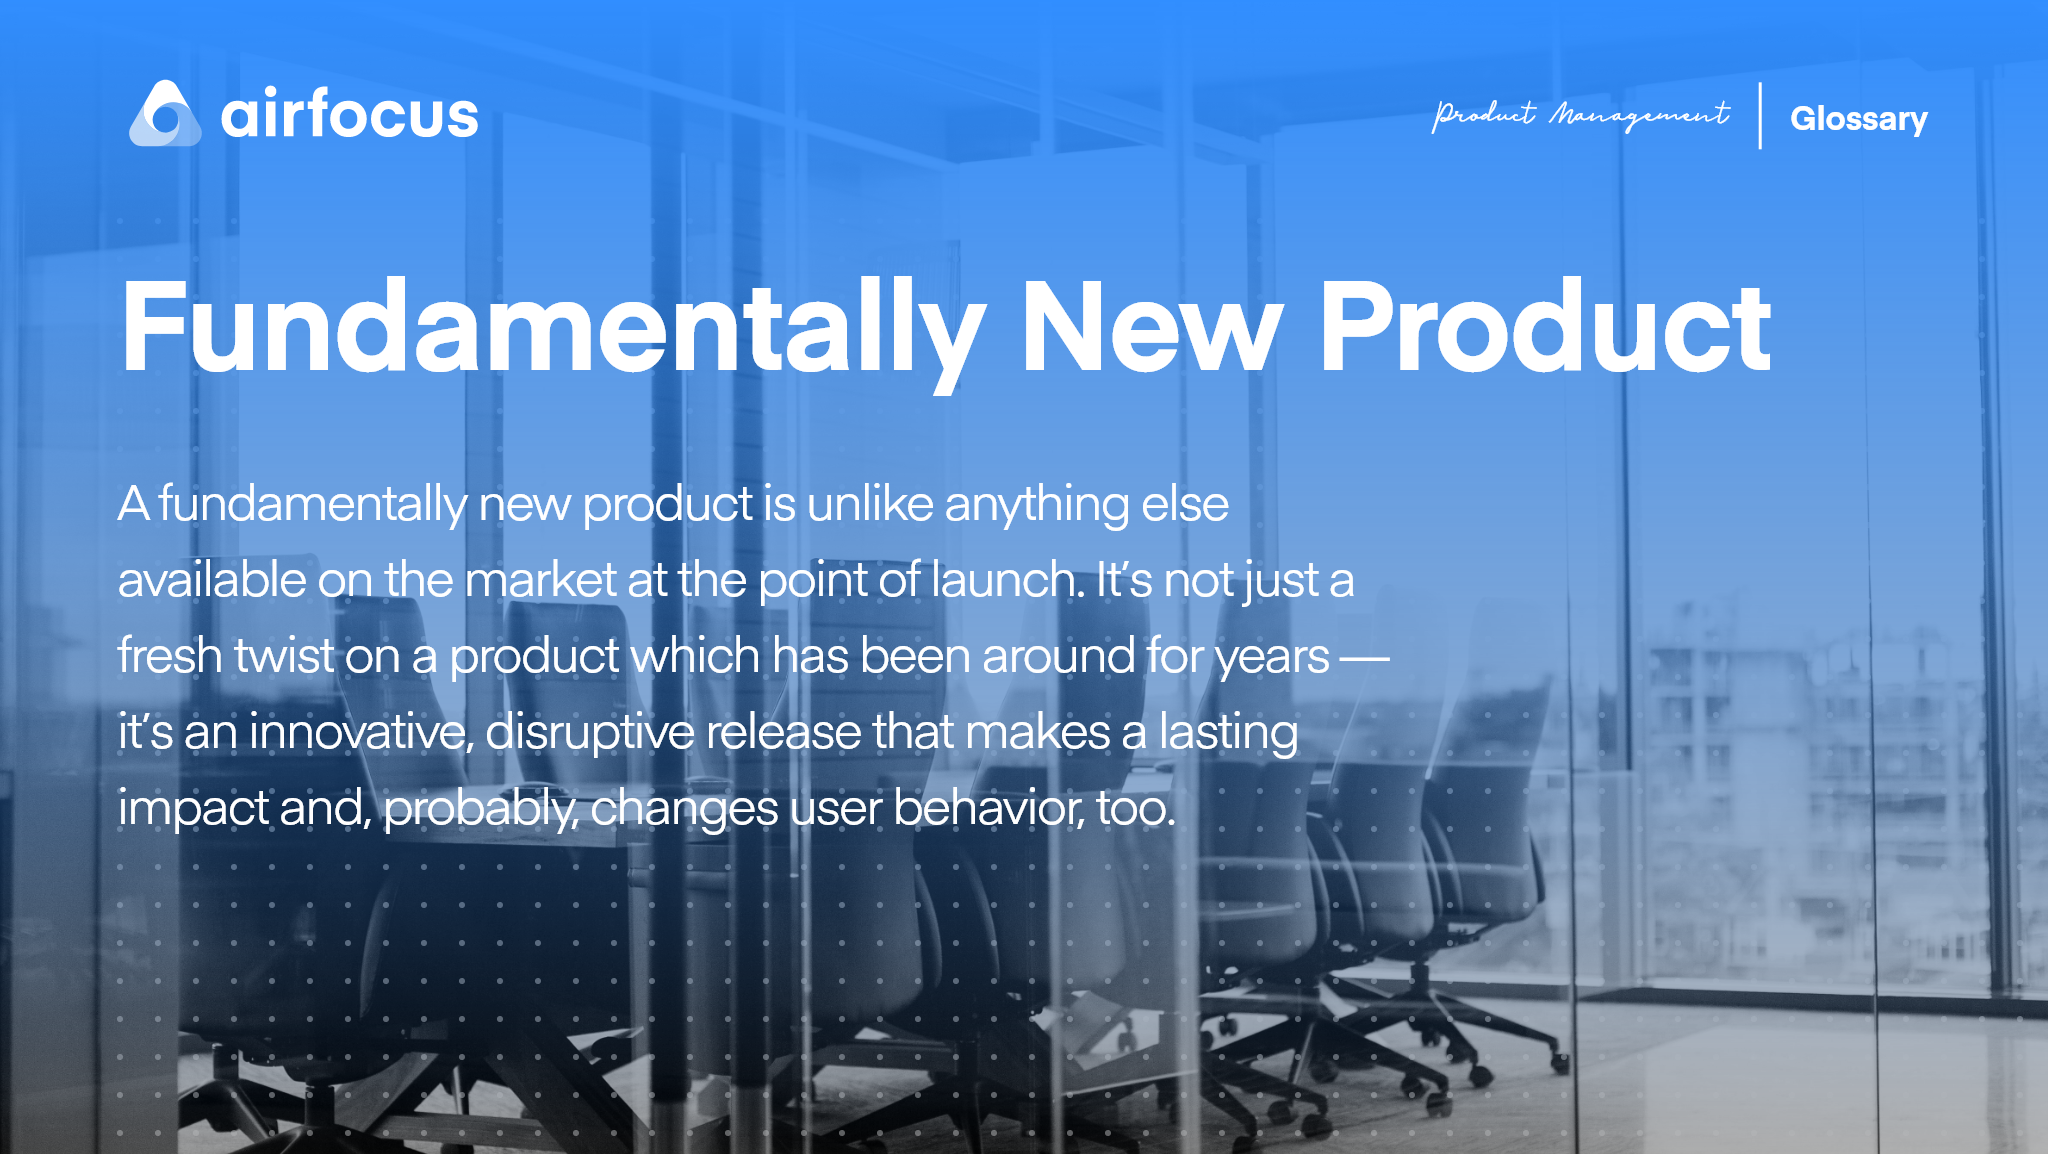 What Is A Fundamentally New Product?